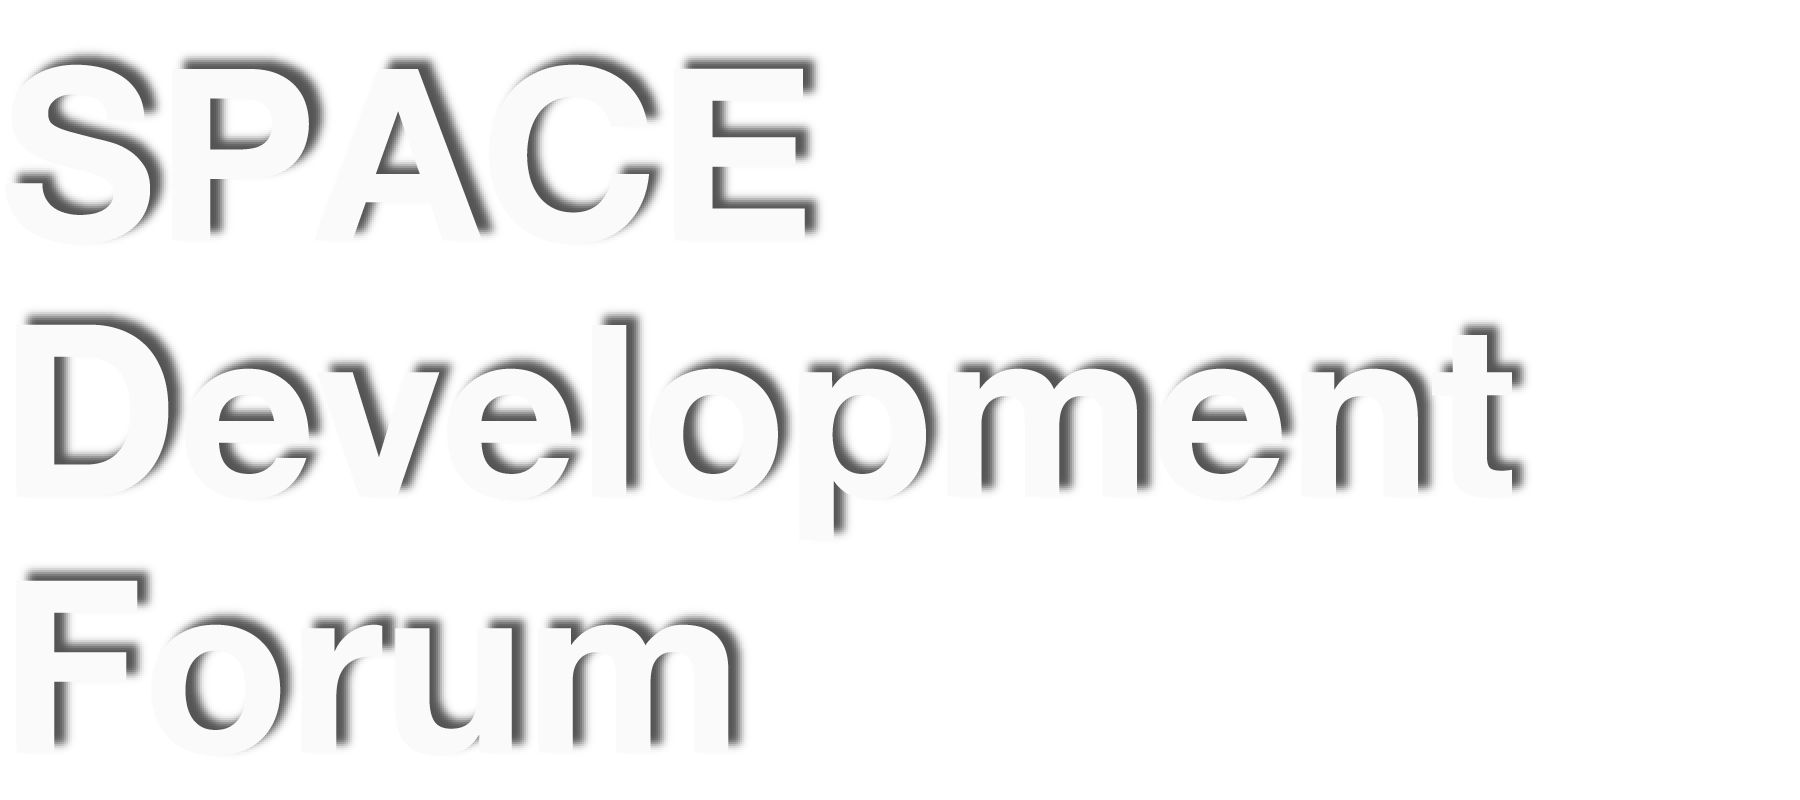 SPACE Development Forum 2018